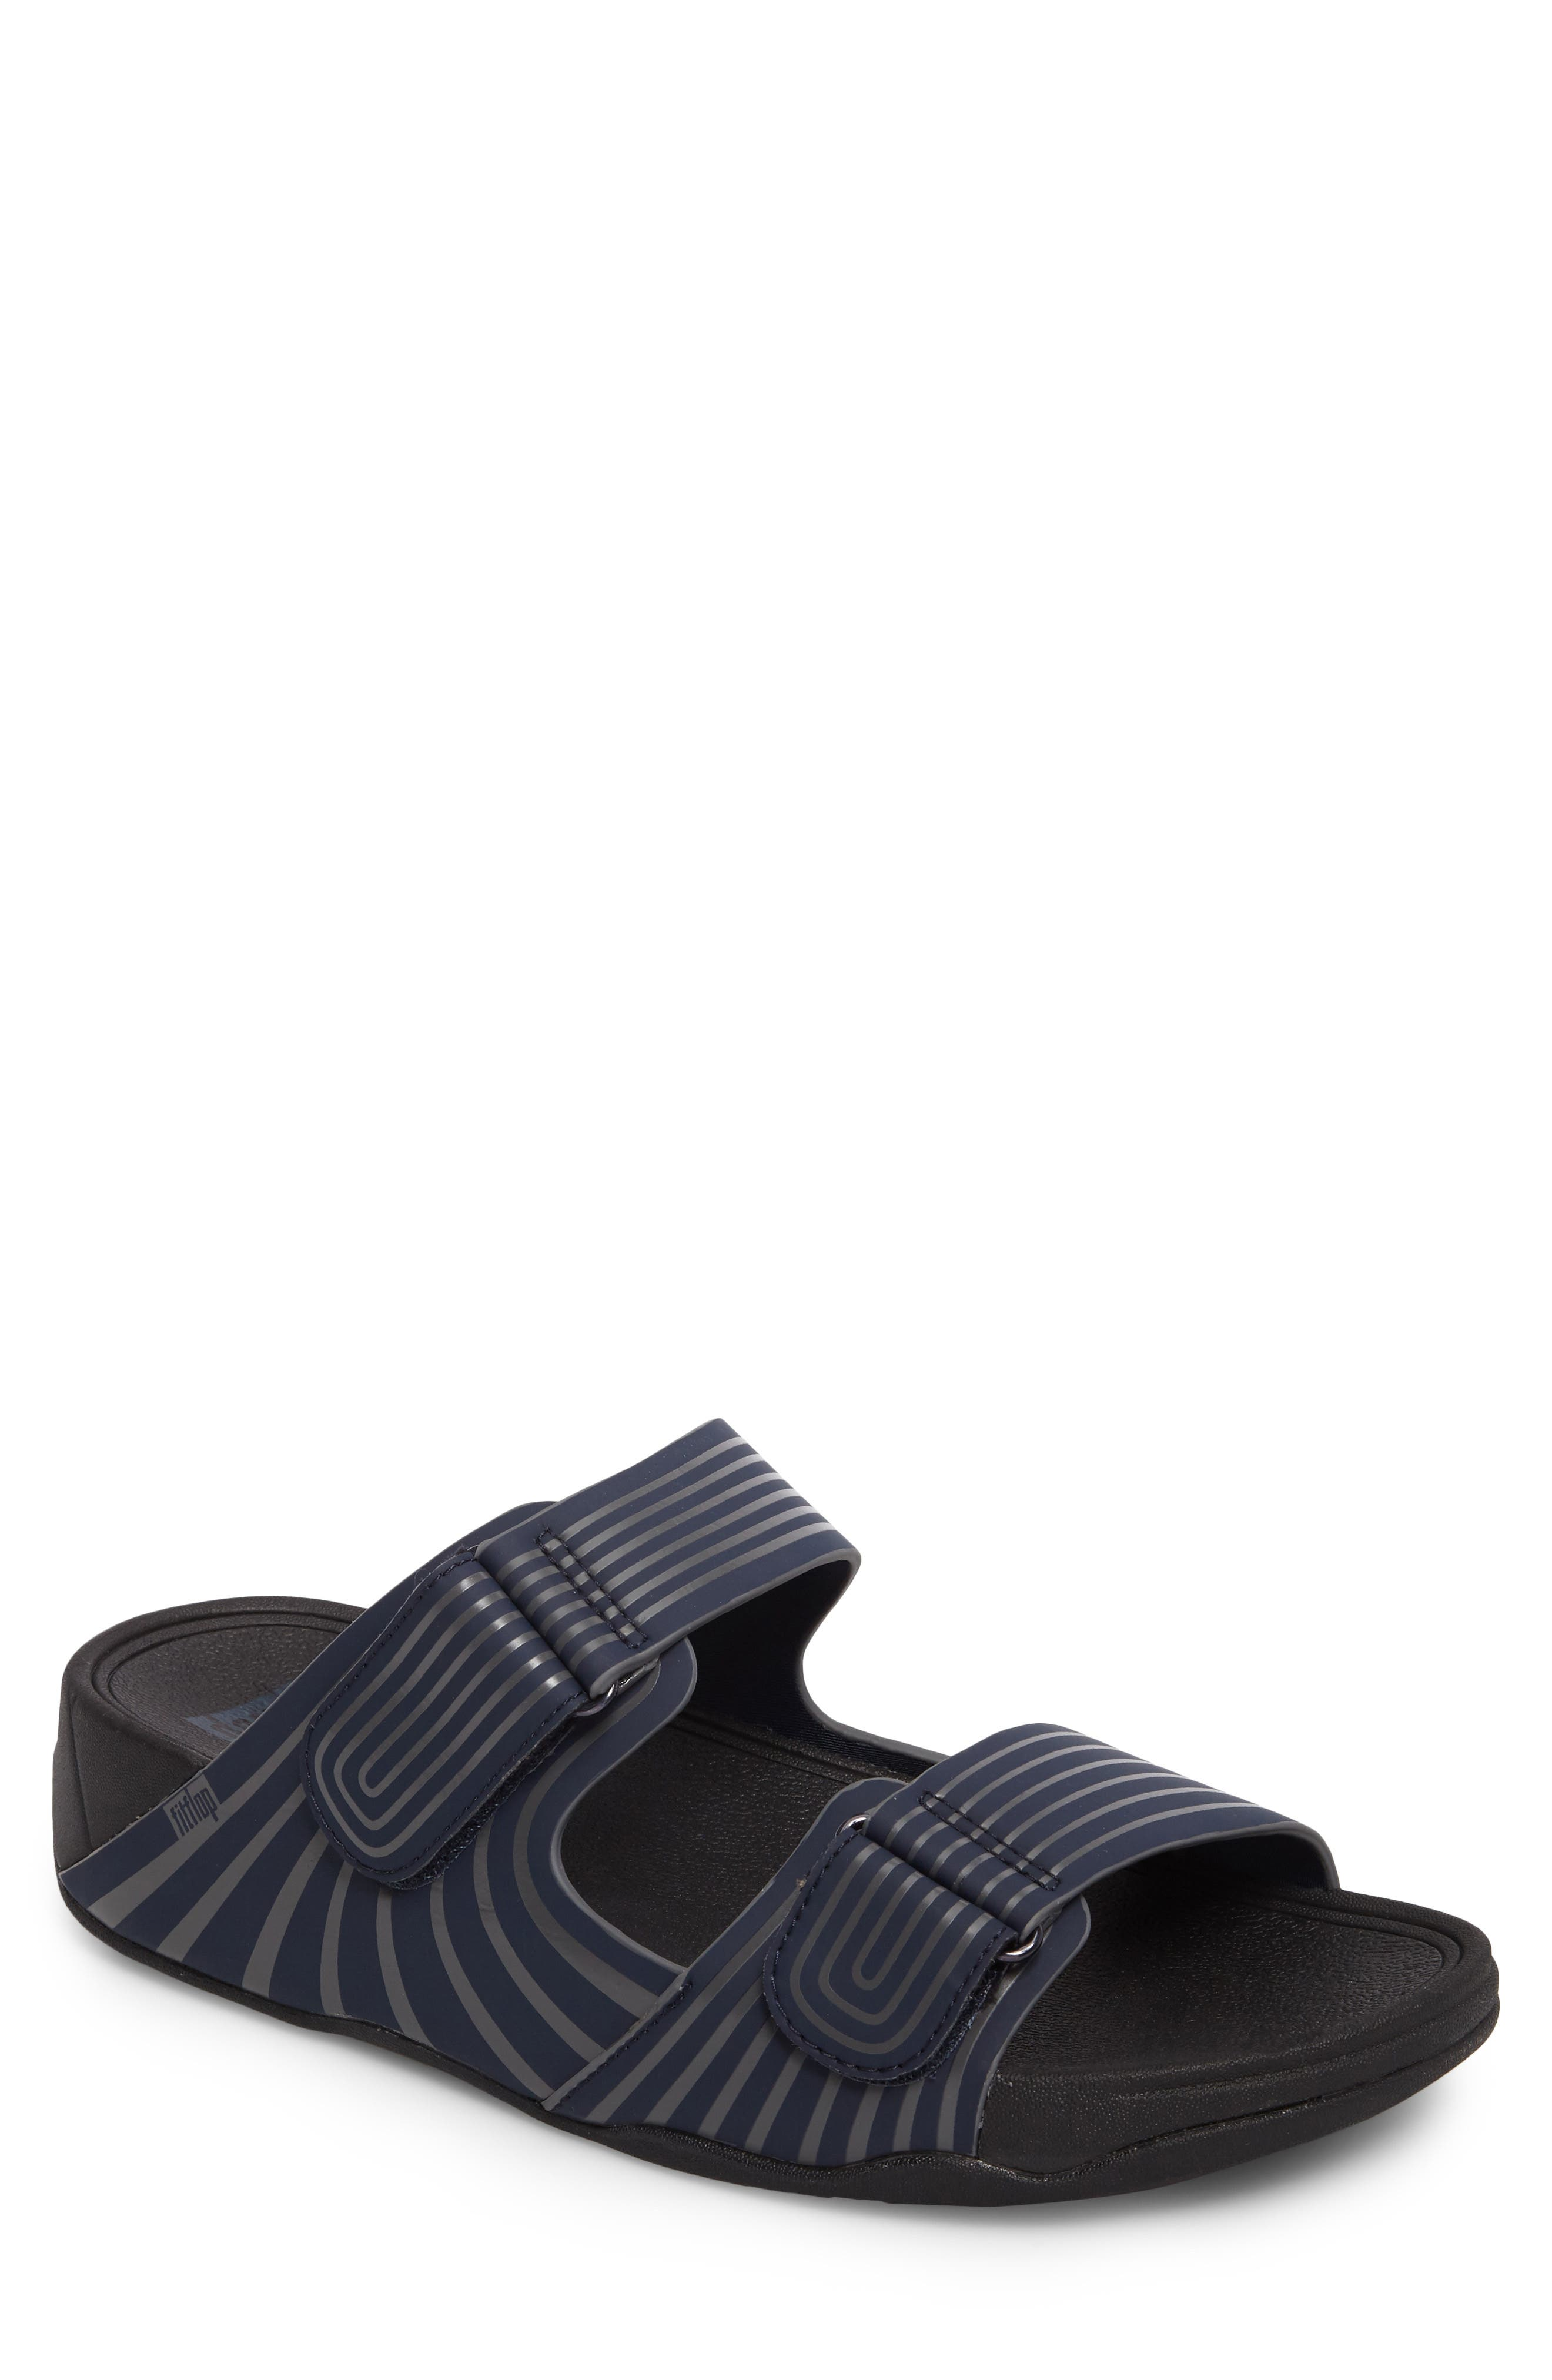 7dad09346f9f8 Fitflop Gogh Sport Slide Sandal In Midnight Navy Rubber